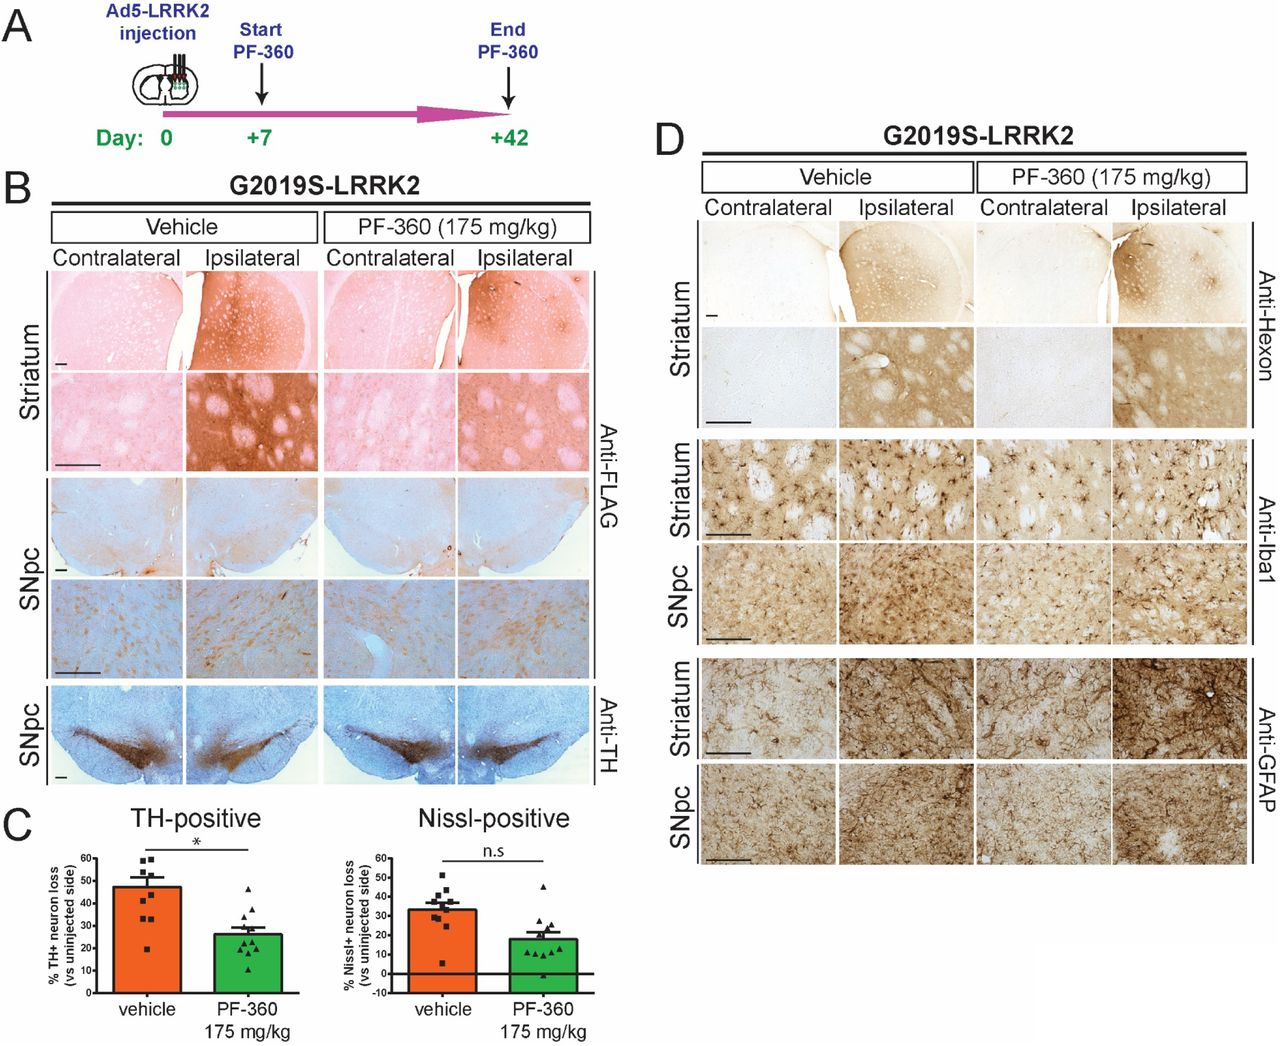 Pharmacological kinase inhibition (PF-360) protects against dopaminergic neurodegeneration induced by human G2019S LRRK2. A) Ad5-G2019S-LRRK2 vectors were unilaterally delivered at six distinct locations (1.5 x 10 10 vp/site, in 2.5 μl) to the rat striatum. Rats were fed continuously with control (vehicle) or PF-360 (175 mg/kg) chow from days 7 to 42 post-injection. Brain tissues were harvested at 42 days post-injection and subjected to immunohistochemical analysis. B) Immunohistochemistry reveals expression of human LRRK2 (anti-FLAG antibody) in striatum and nigra, or nigral dopaminergic neurons (anti-TH antibody), of rats at 42 days post-injection. Images indicate low and high magnification for each group and brain region. TH sections were counterstained with Cresyl violet. Scale bars: 500 μm. C) Unbiased stereological analysis of TH-positive dopaminergic and total Nissl-positive neuron number in the substantia nigra at 42 days post-injection. Bars represent % neuronal loss in the injected ipsilateral nigra relative to the contralateral nigra (mean ± SEM, n = 12 animals/group), * P